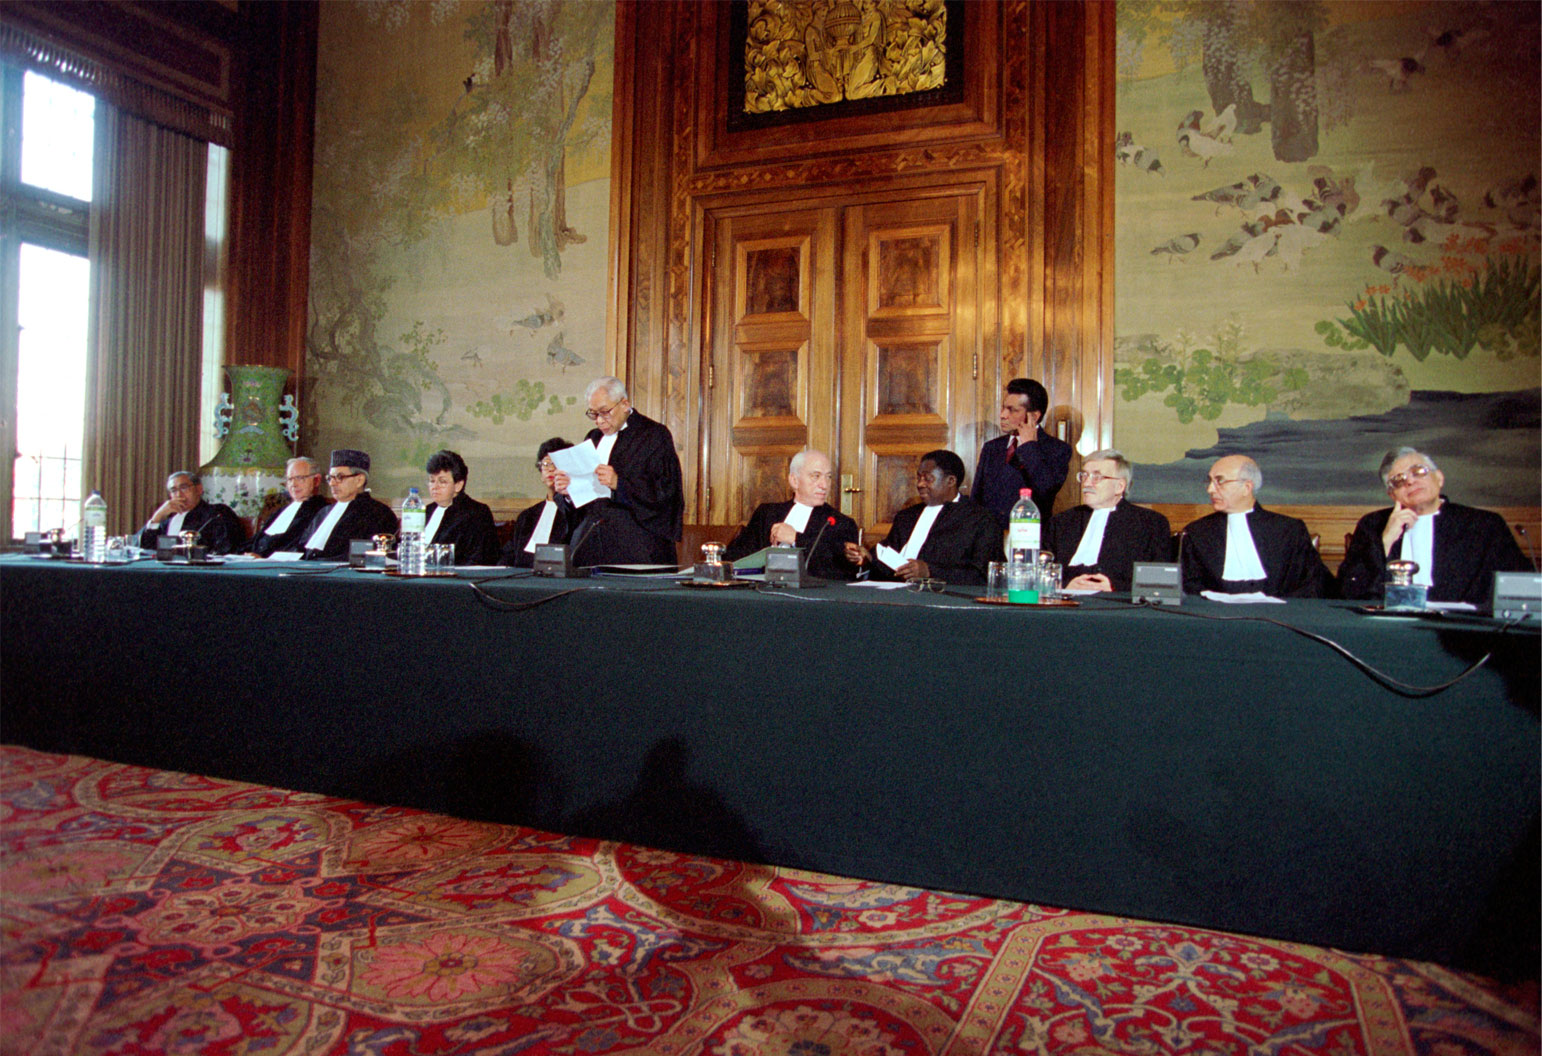 First Session of the International Tribunal on War Crimes in Former Yugoslavia in The Hague (1993).